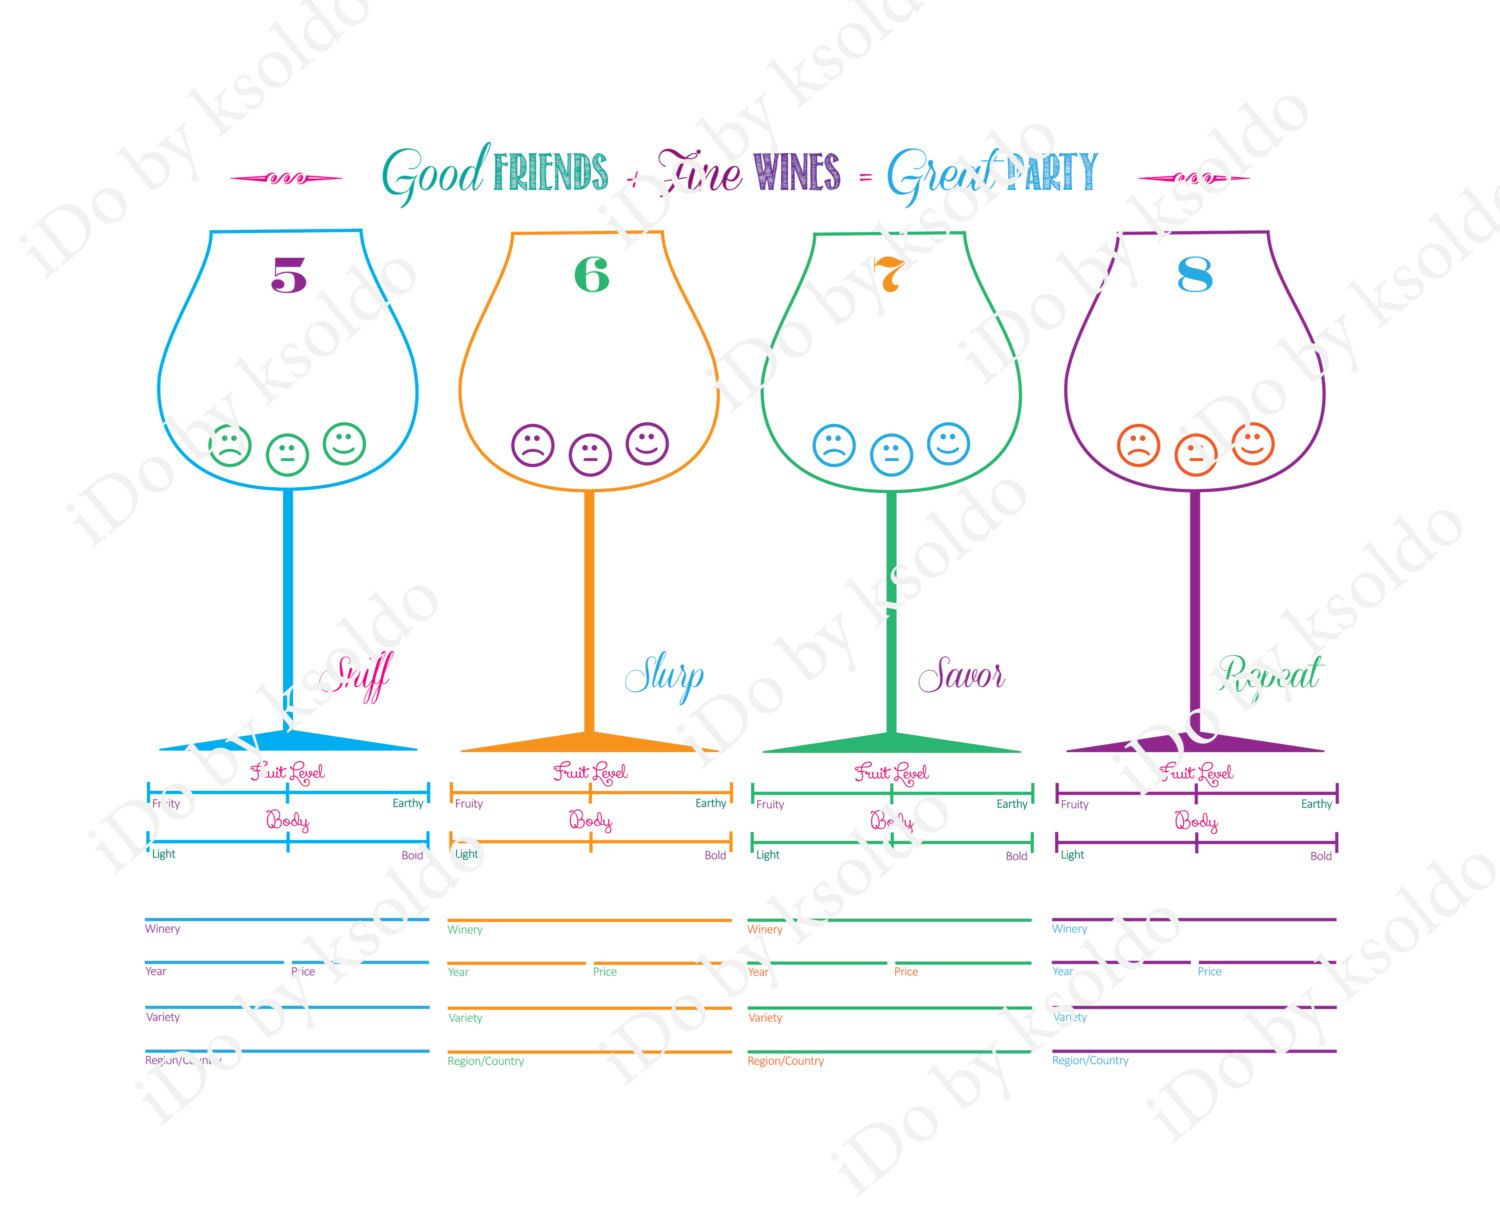 Wine Tasting Score Card For Up To 8 Wines Diy Printable By